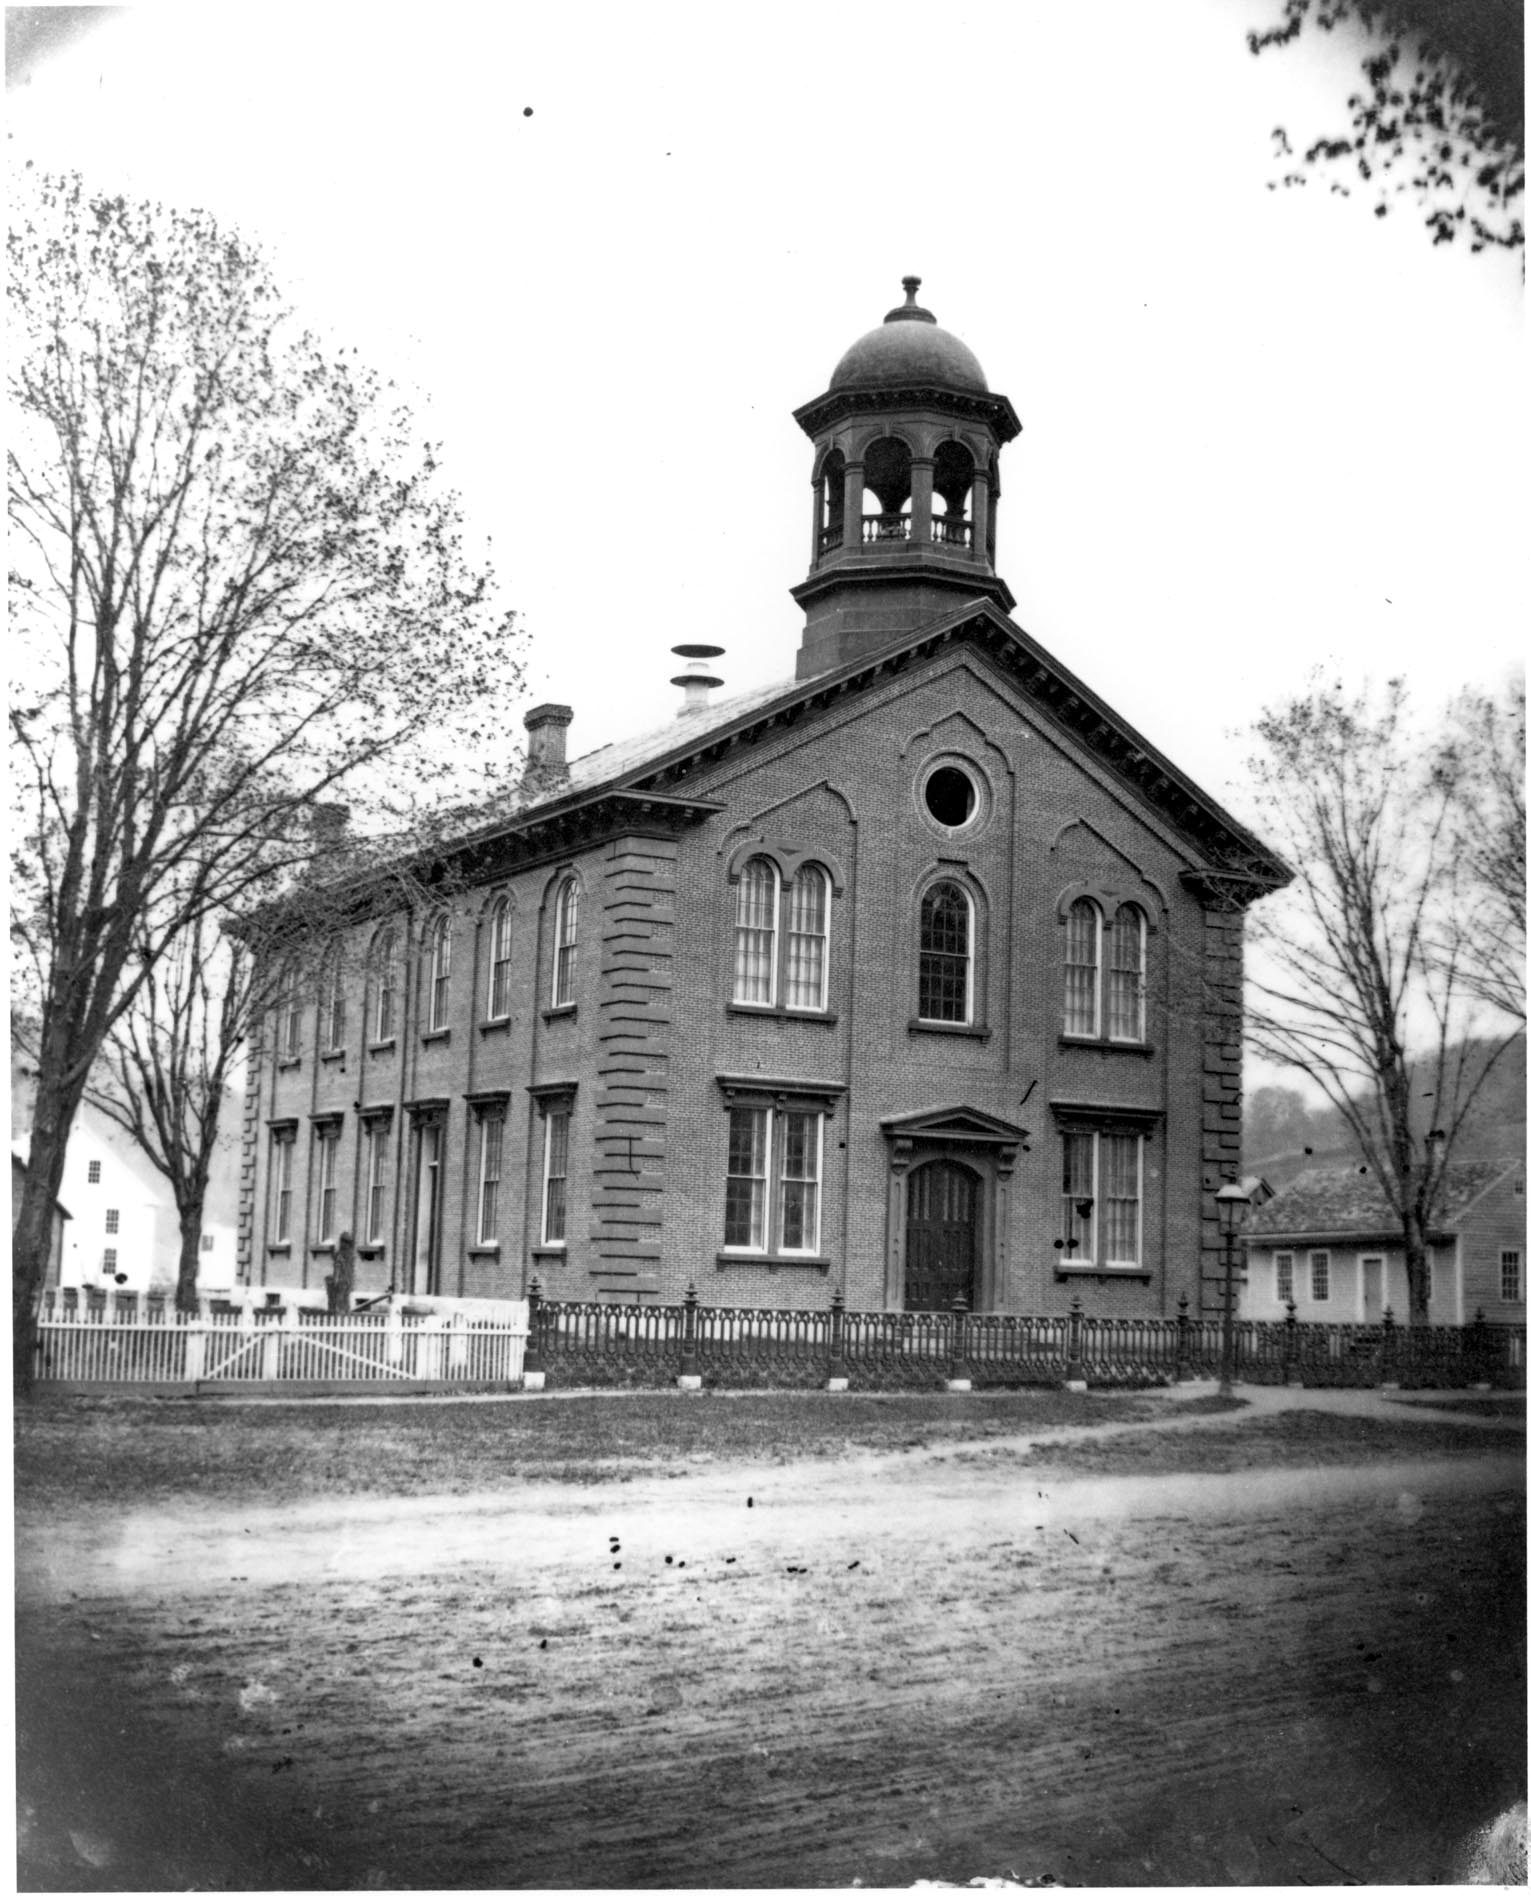 The County Courthouse in the village, built in 1855. -